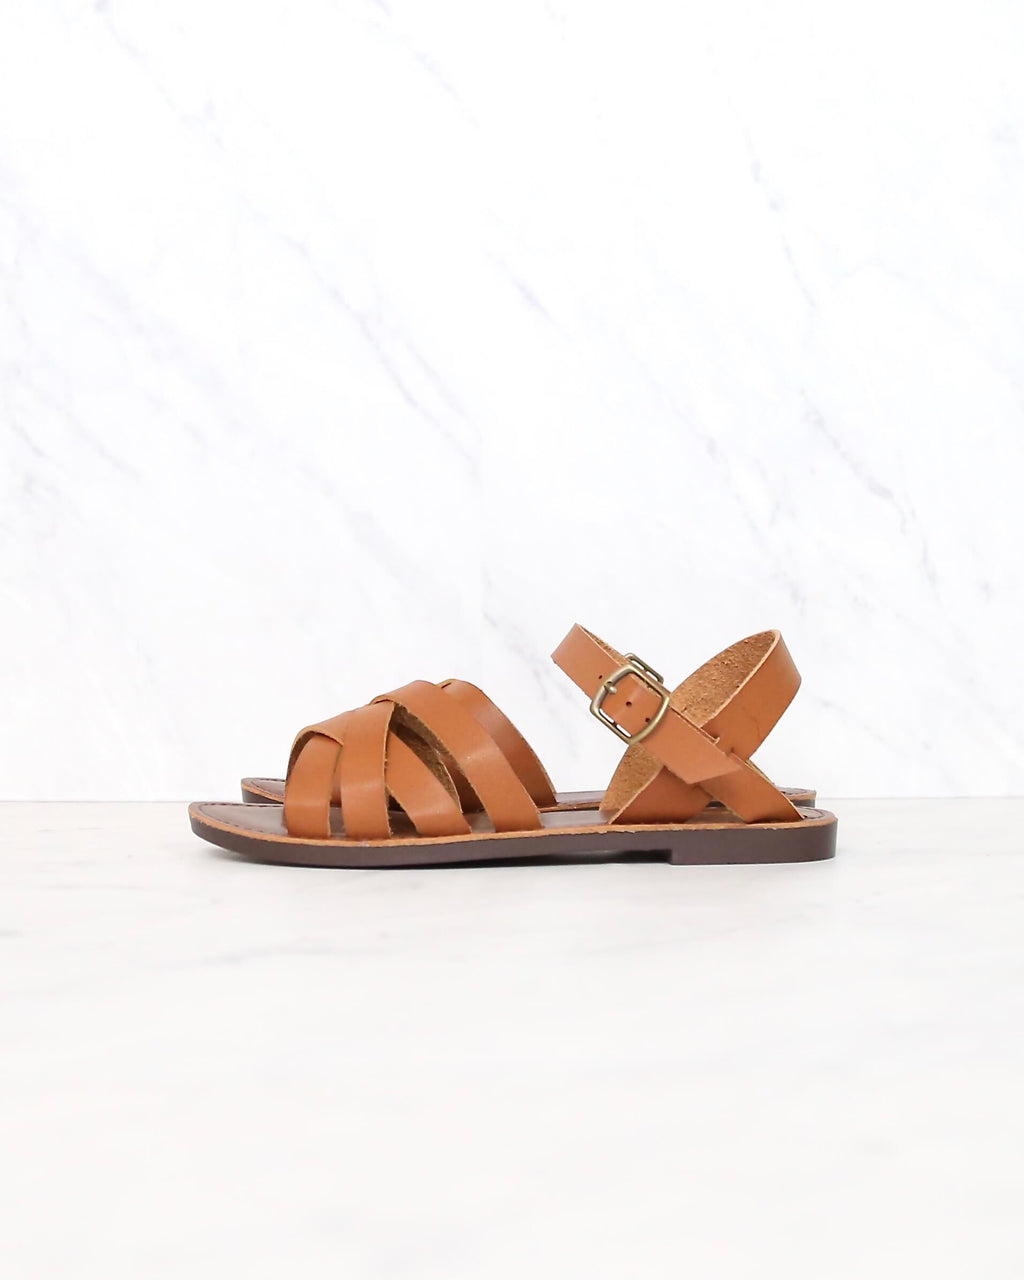 Multi Strapped Flat Gladiator Sandal in Tan